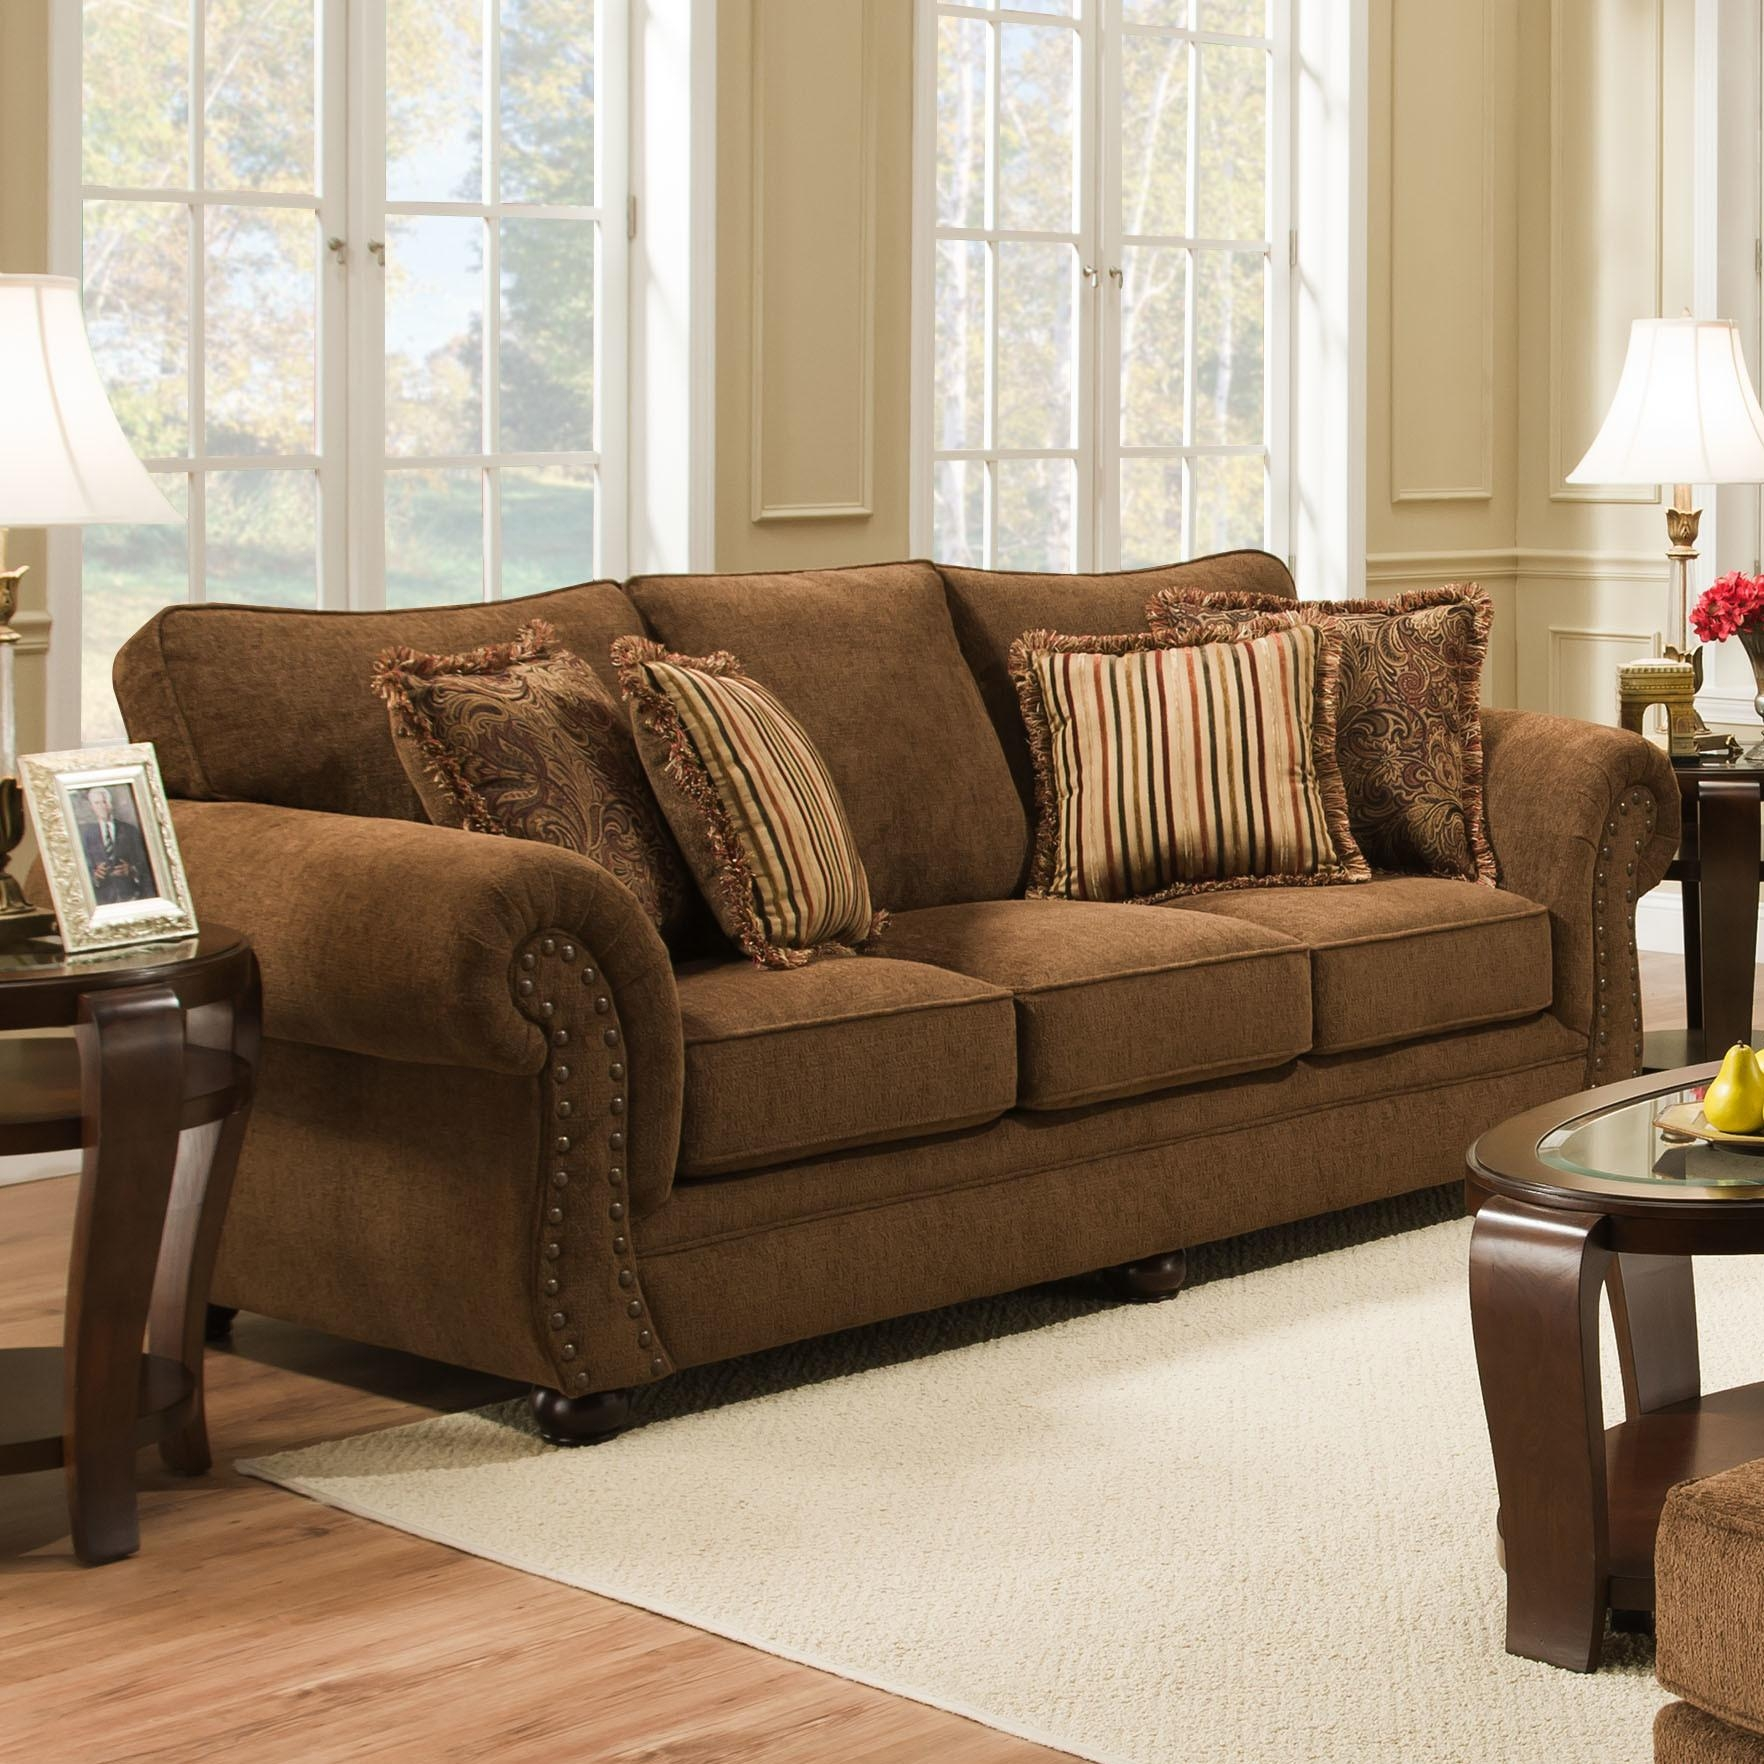 Furniture: Simmons Sofa | Simmons Sofa Bed | Simmons Rocker Recliner Pertaining To Simmons Sofa Beds (Image 4 of 20)